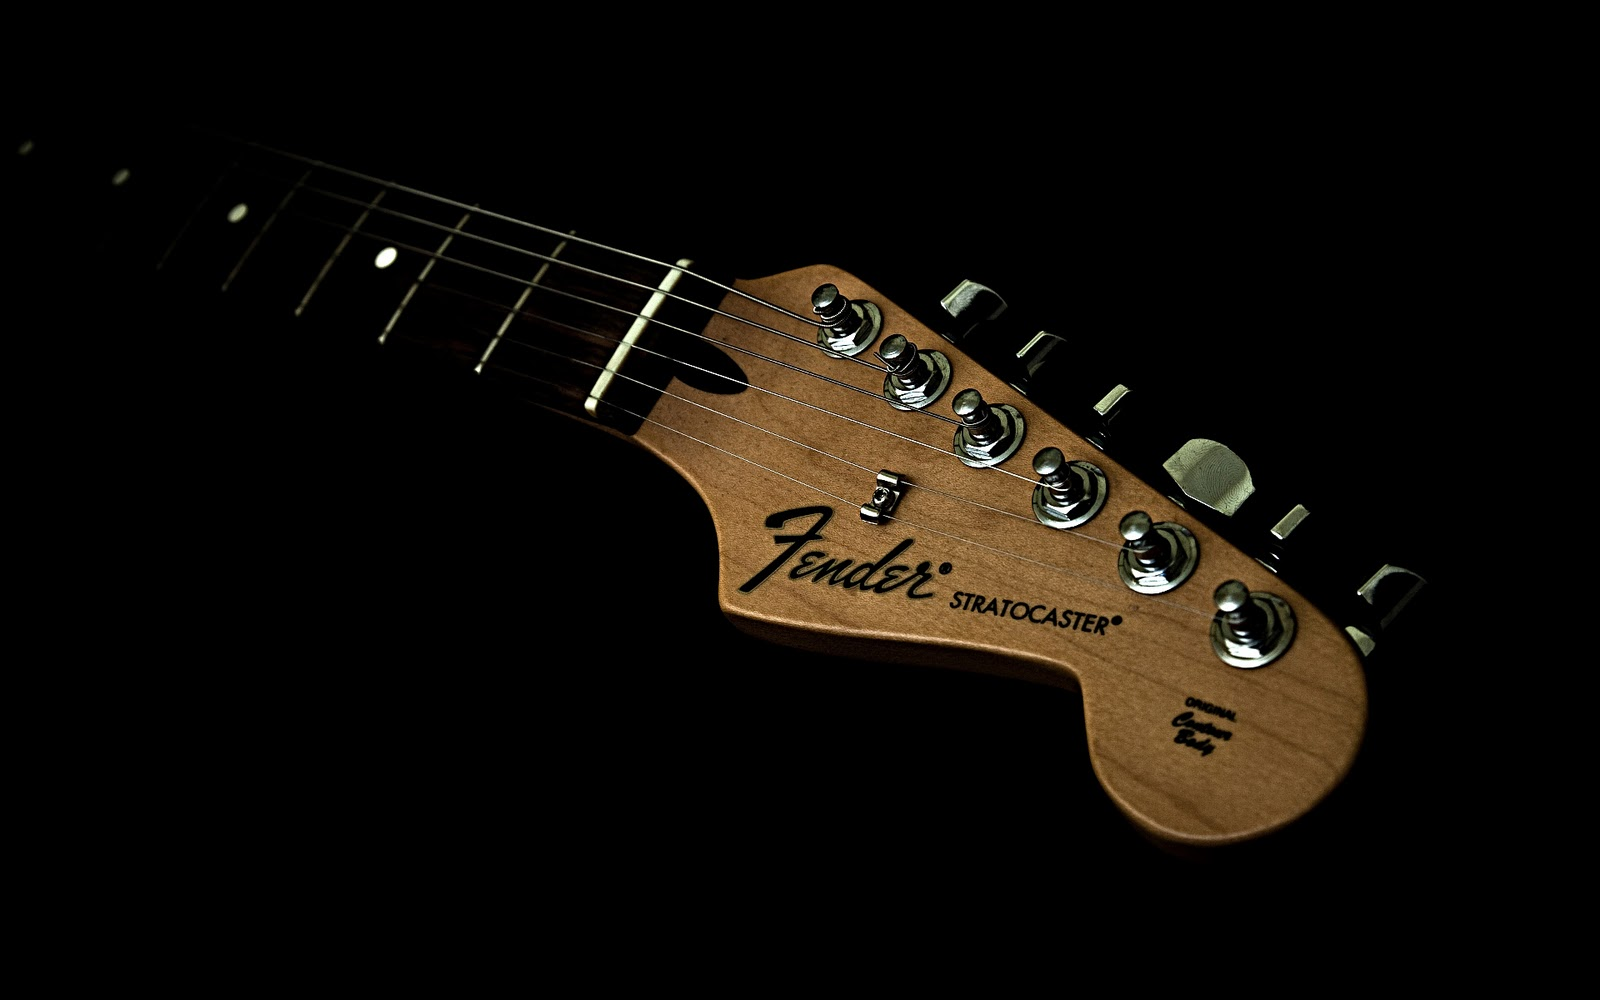 http://4.bp.blogspot.com/-YWf0k4__dTM/TV_ixmm7REI/AAAAAAAAAT8/dSZ4tWZYuhs/s1600/Fender+Stratocaster+Headstock+Head+Strings+Tuners+Neck+Music+Desktop+HD+Wallpaper+1920x1200+Great+Guitar+Sound+www.GreatGuitarSound.Blogspot.com.jpg